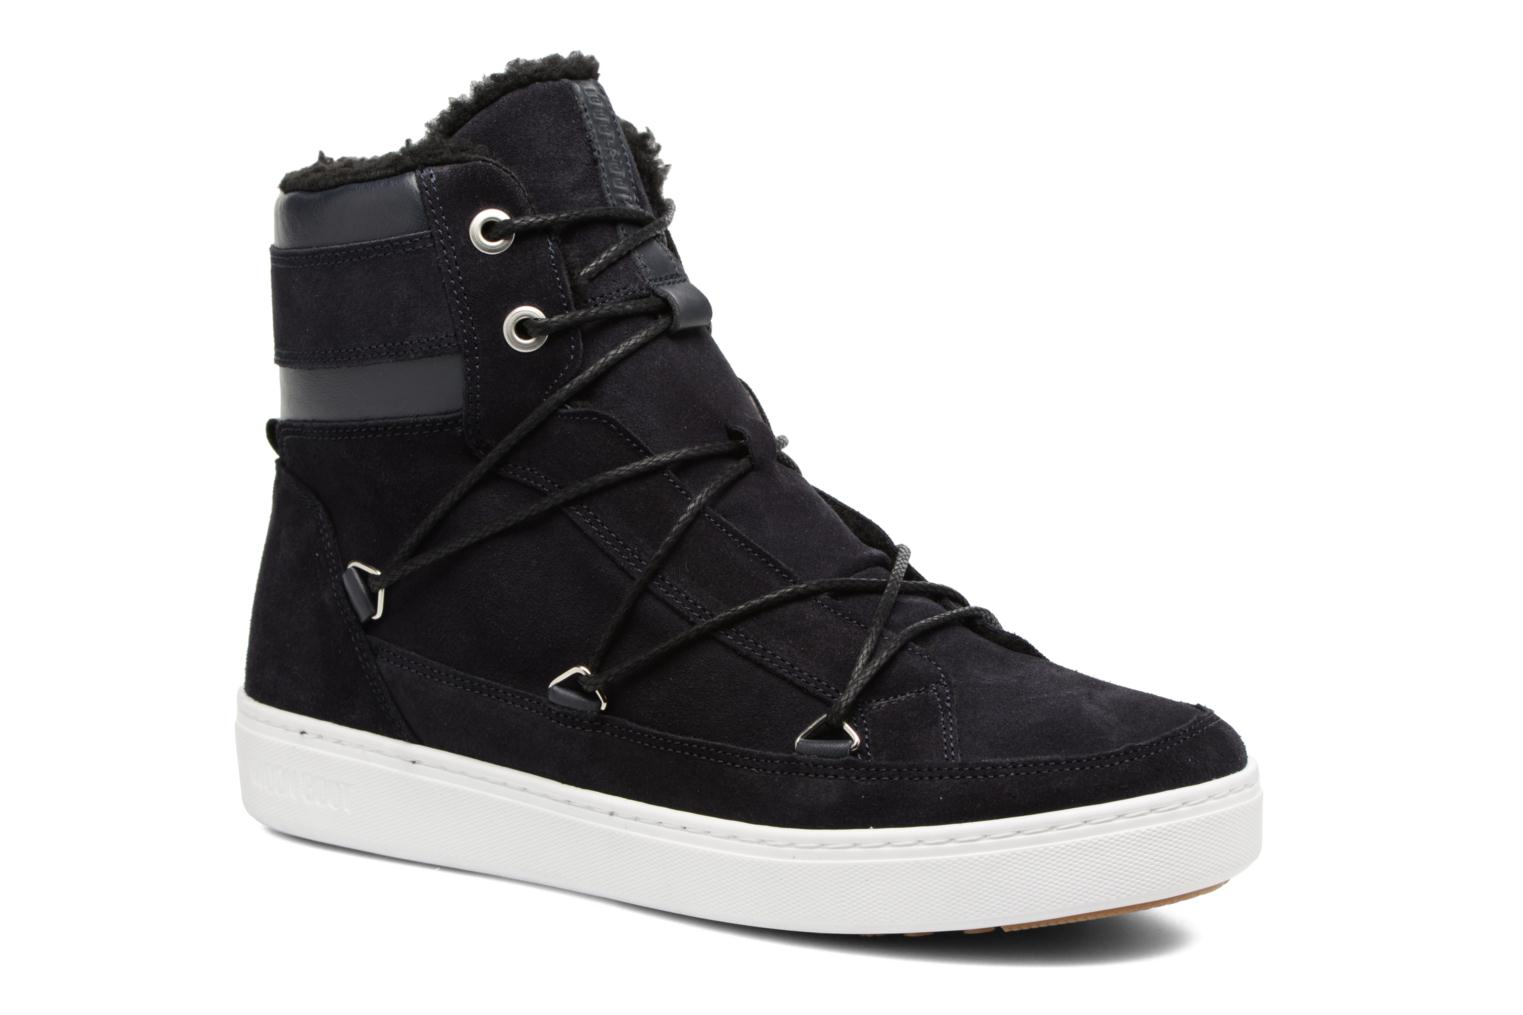 Marques Chaussure femme Moon Boot femme Neil Lux Black-Brown